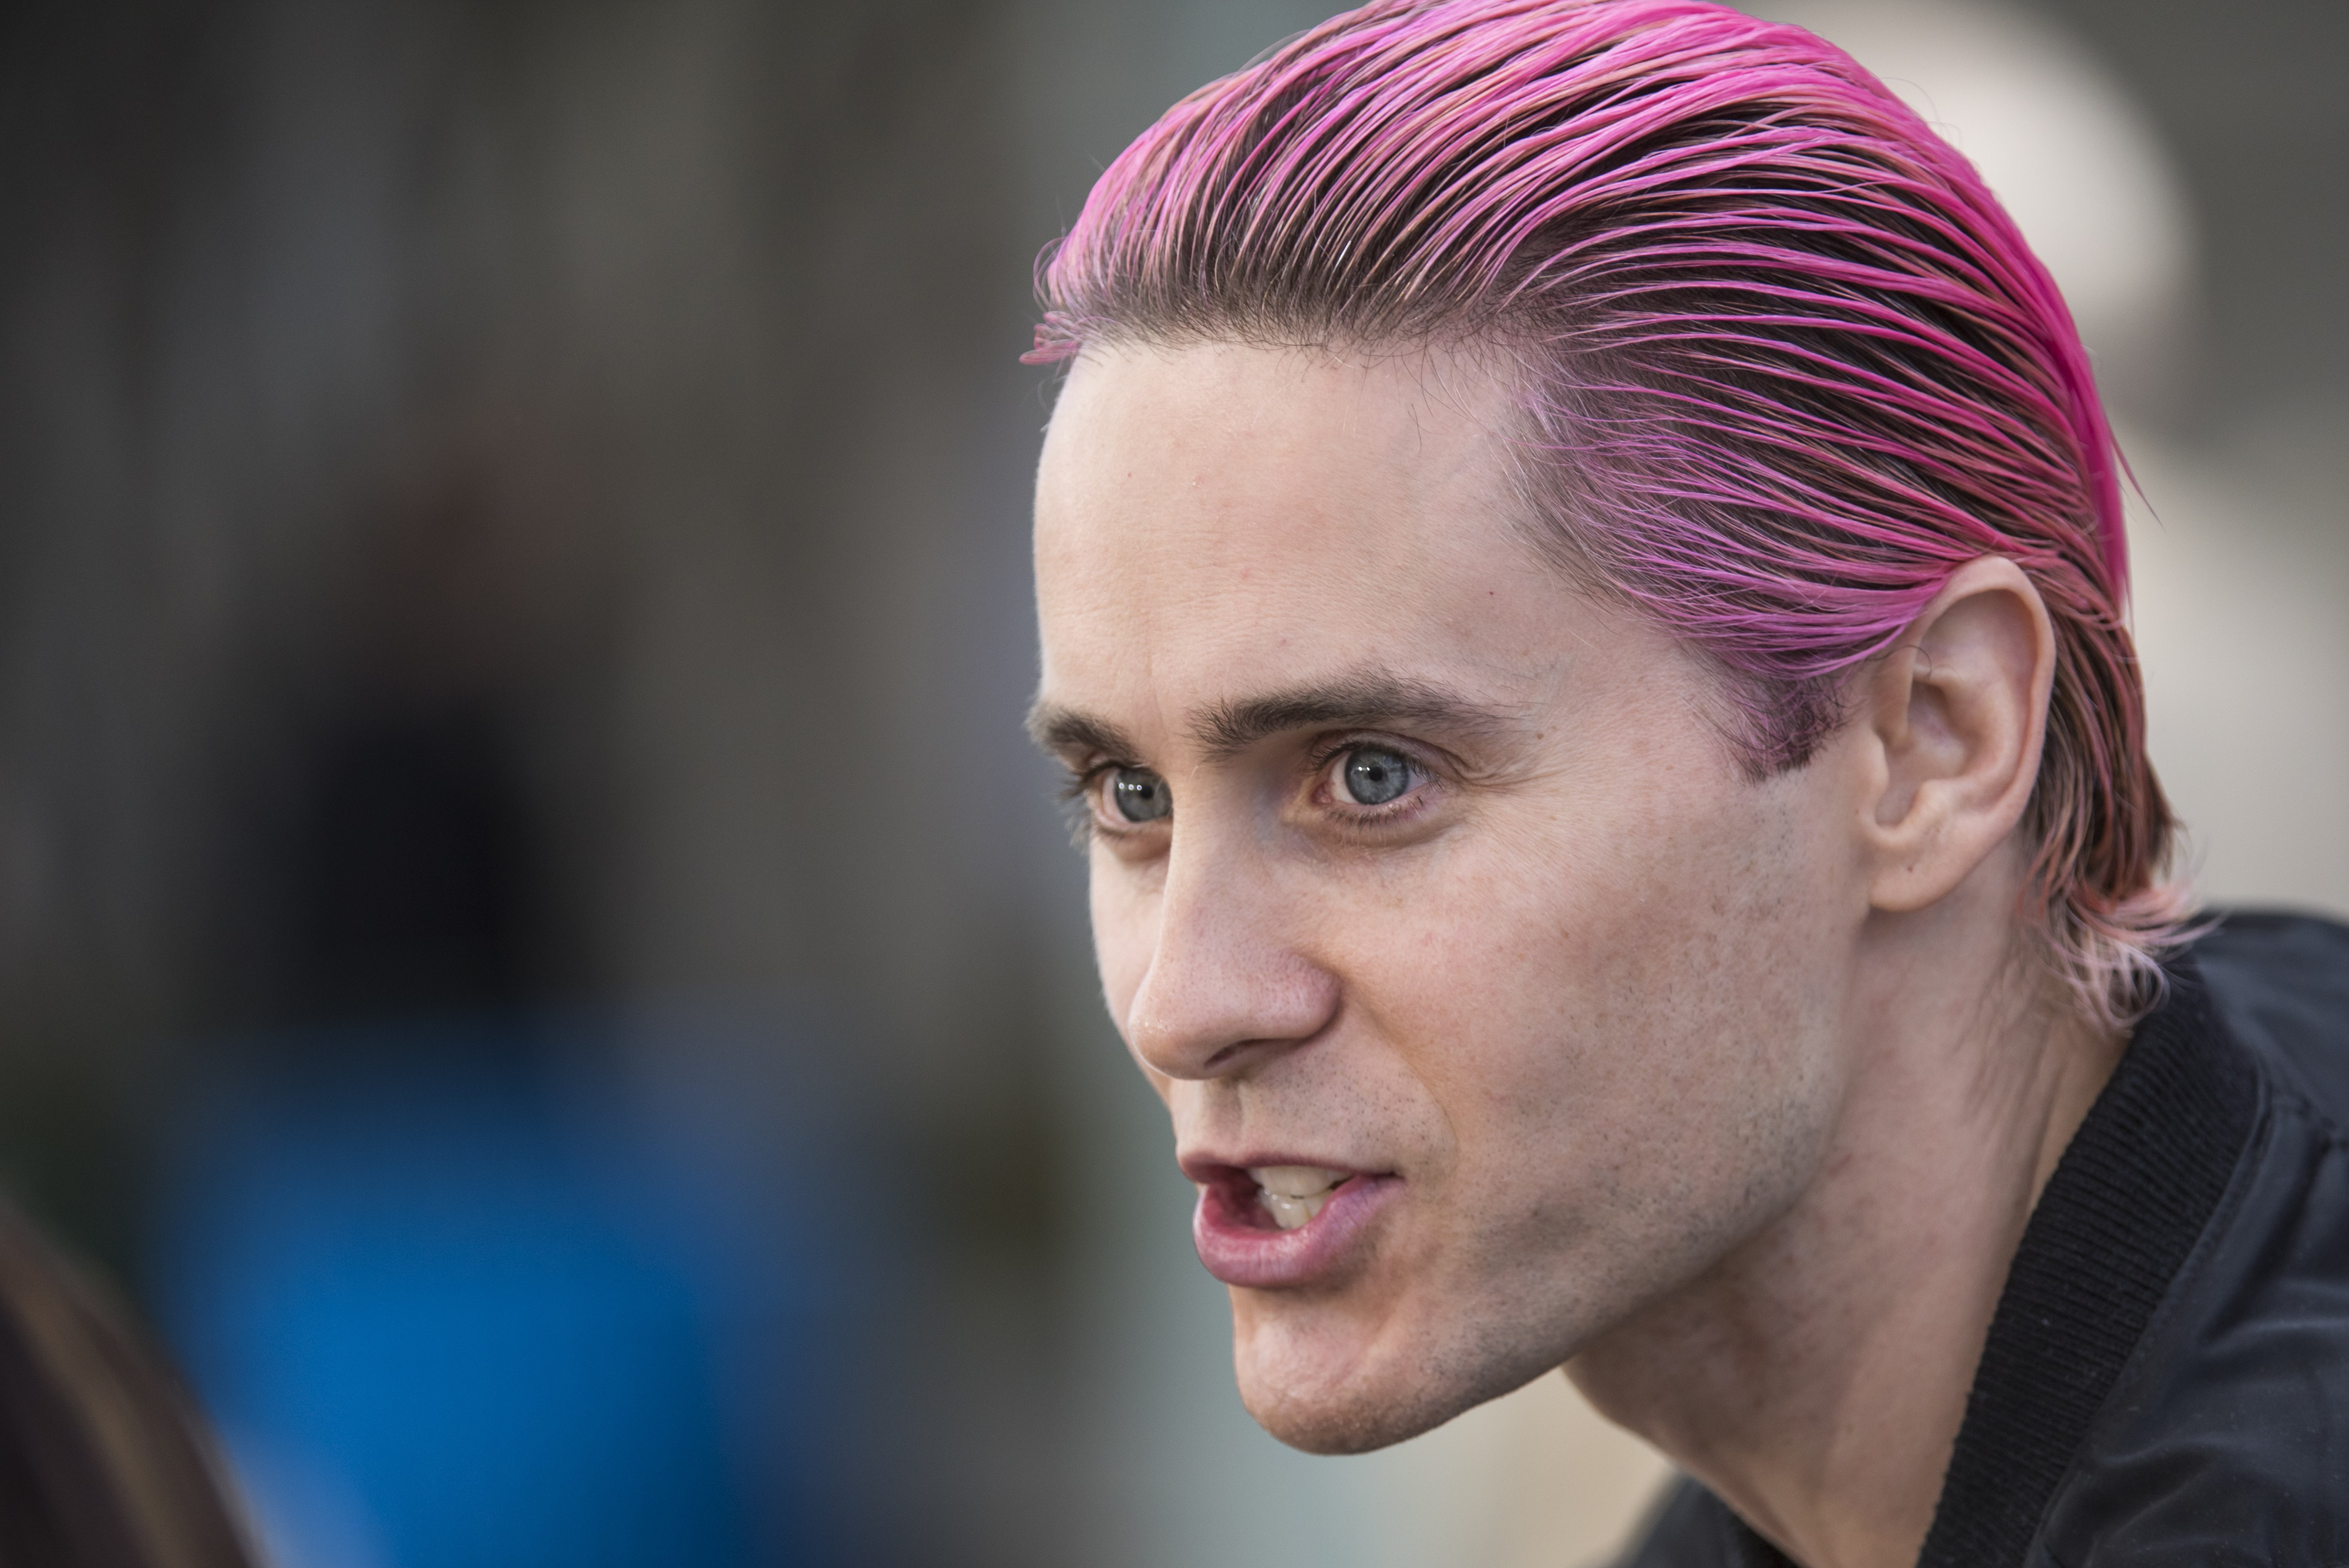 Jared Leto Wallpapers High Quality Download Free